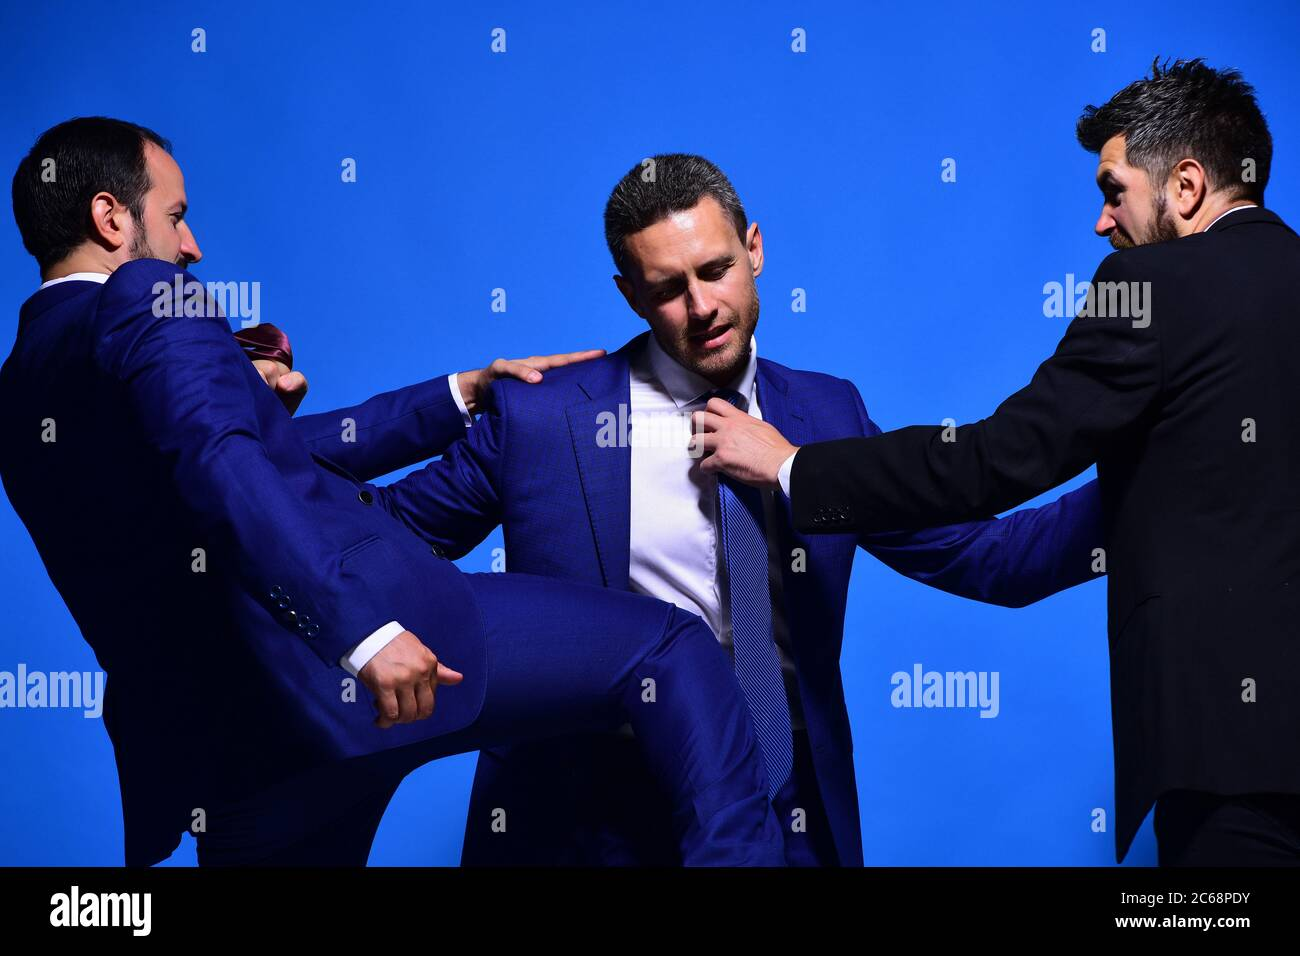 Business opposition and competition concept. Company leaders fight for business leadership. Businessmen with strict faces in formal wear on blue background. Coworkers decide upon best working position Stock Photo